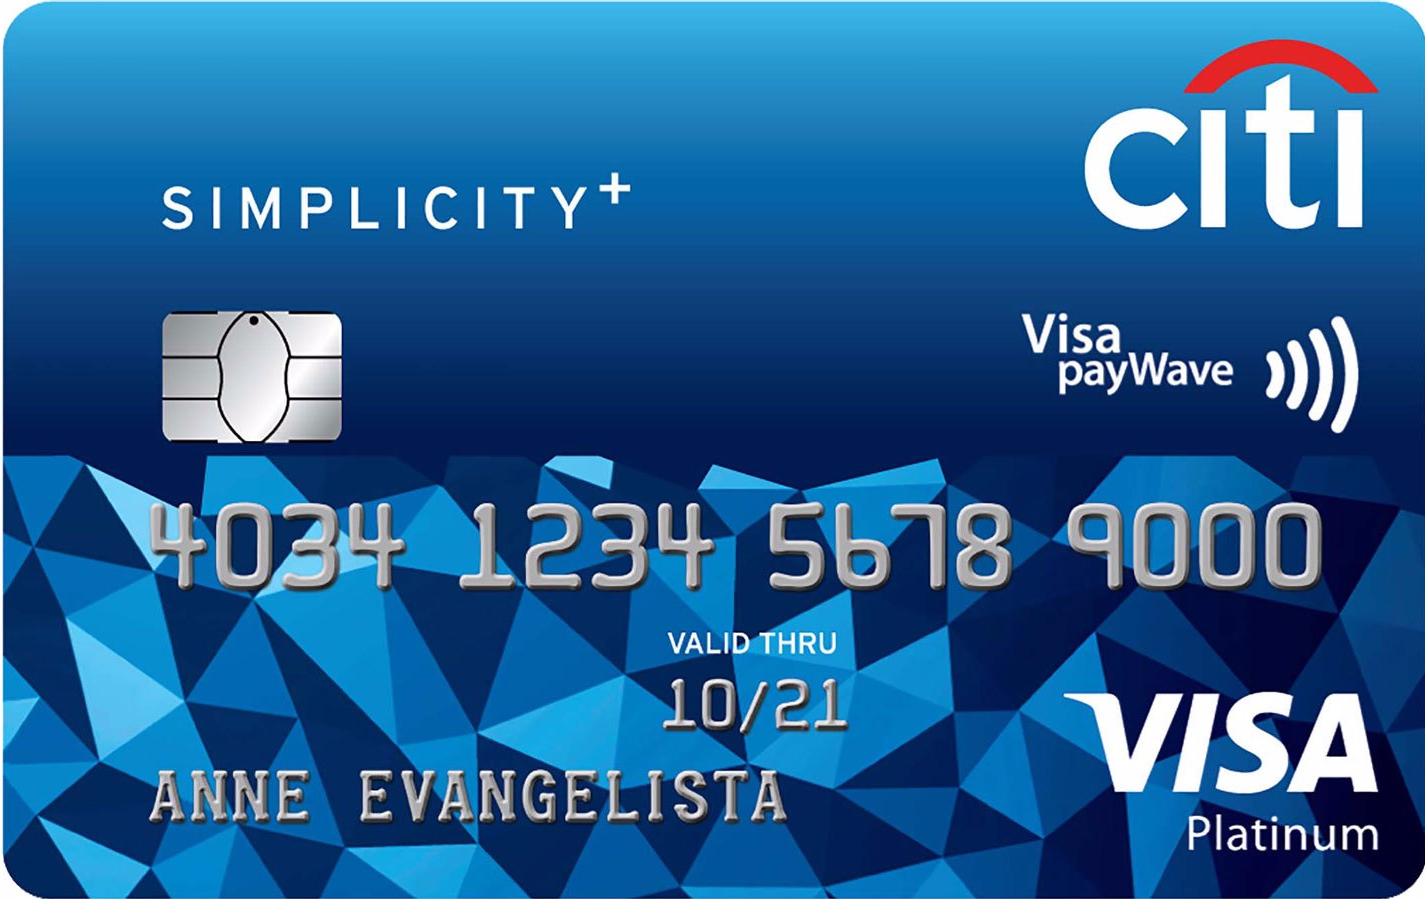 4da8c5421c2a Keeping it simple with Citi Simplicity+ Card - Slvrdlphn s Splashing Pool